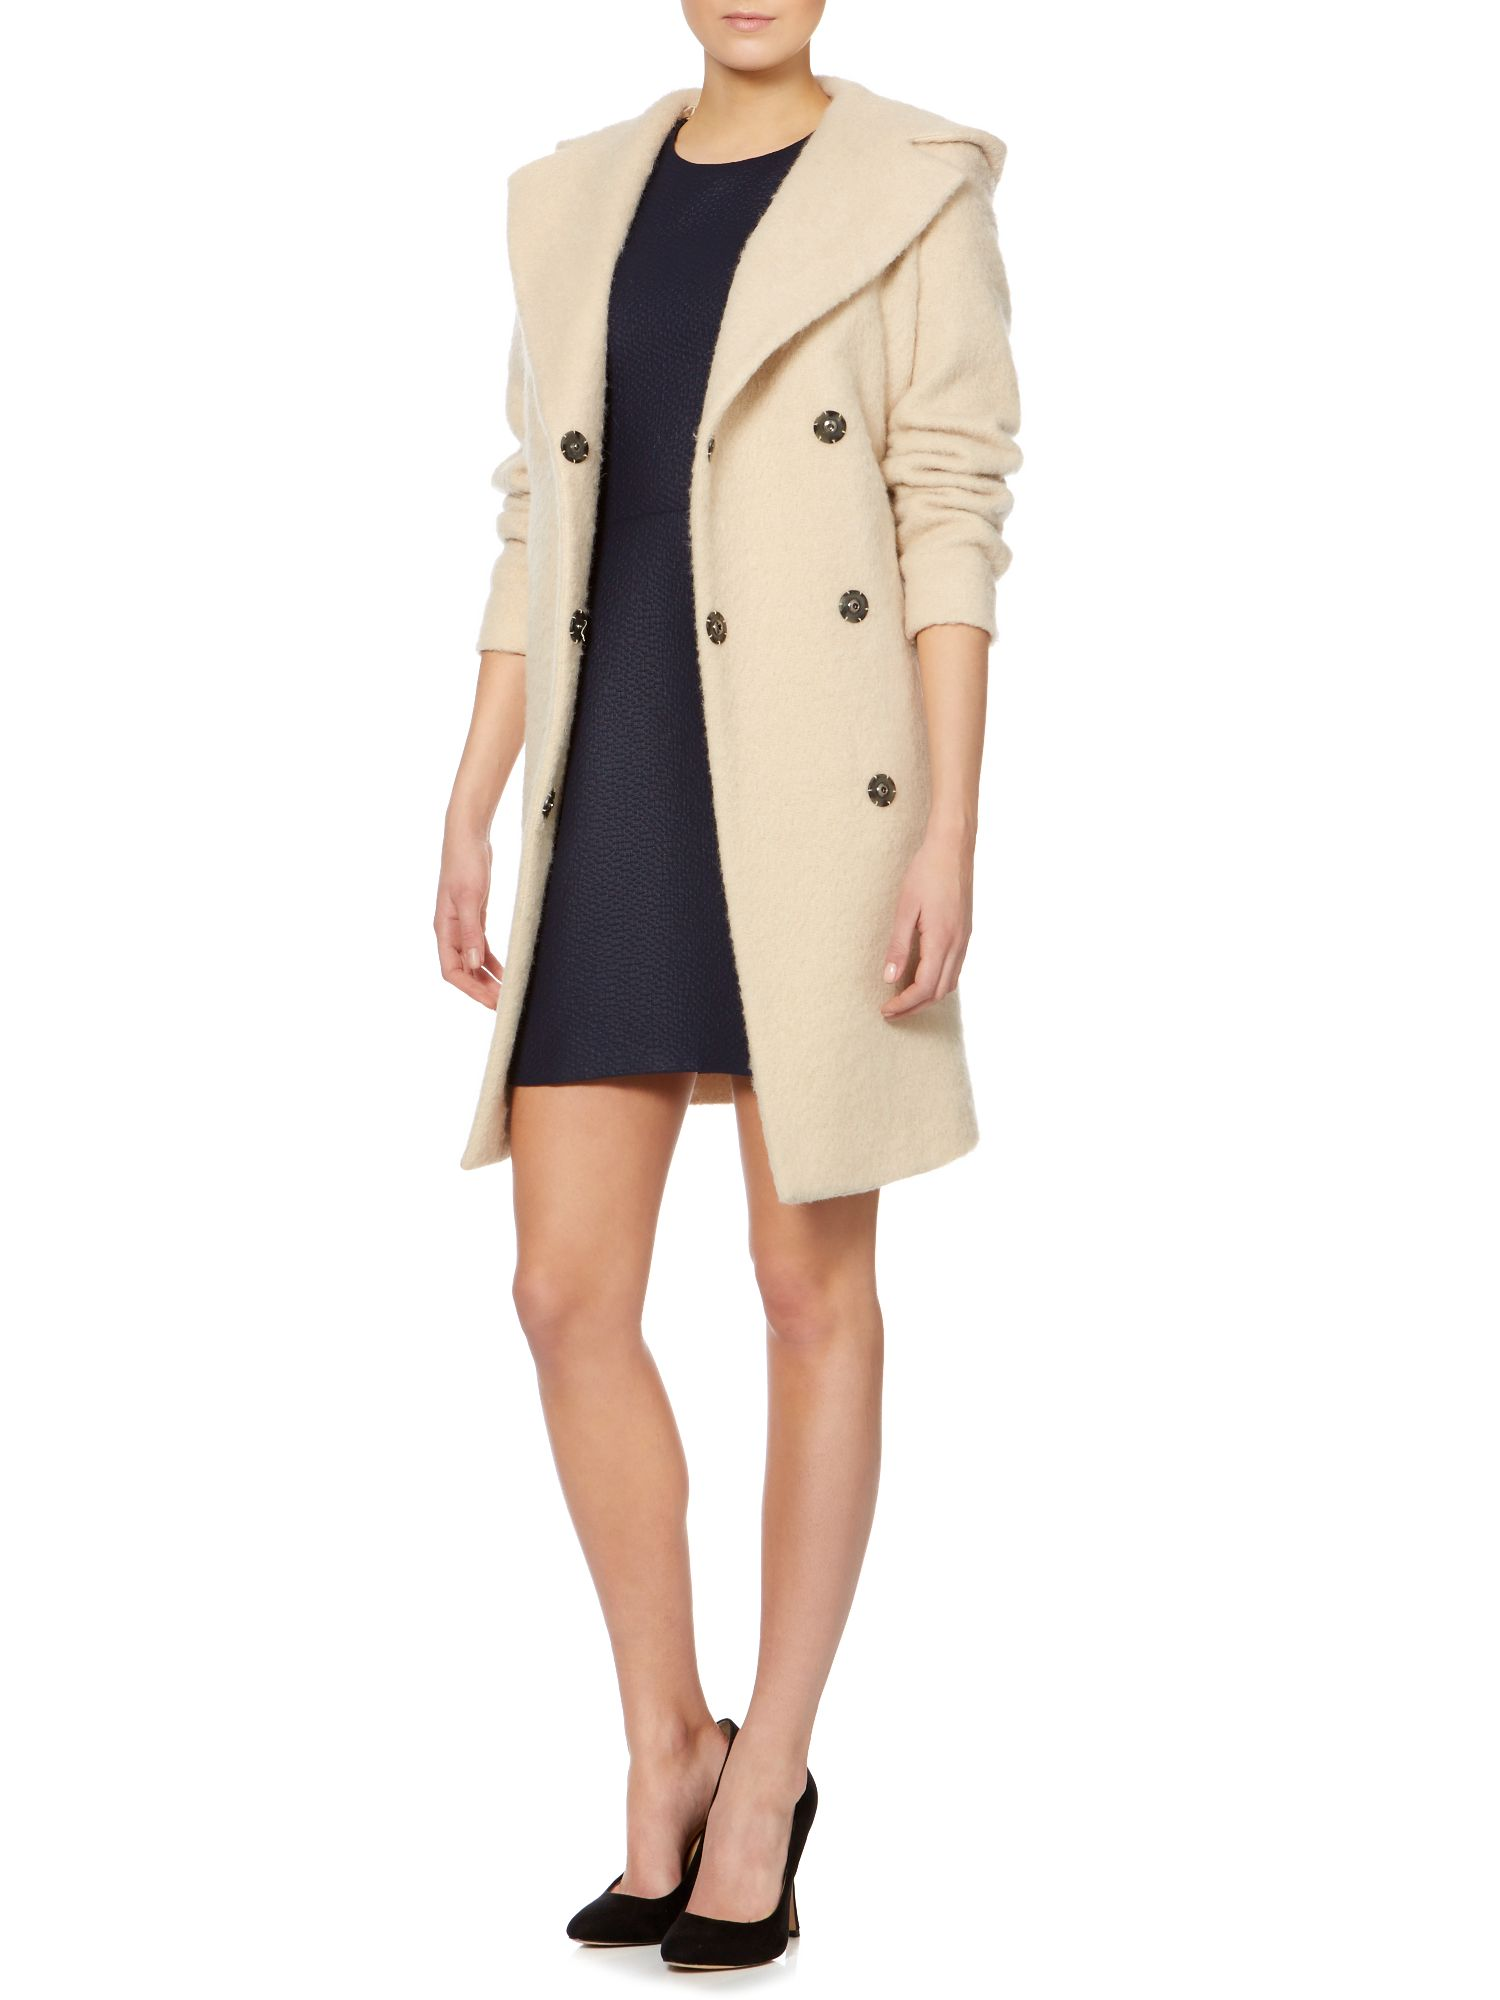 Spuma oversized hooded coat